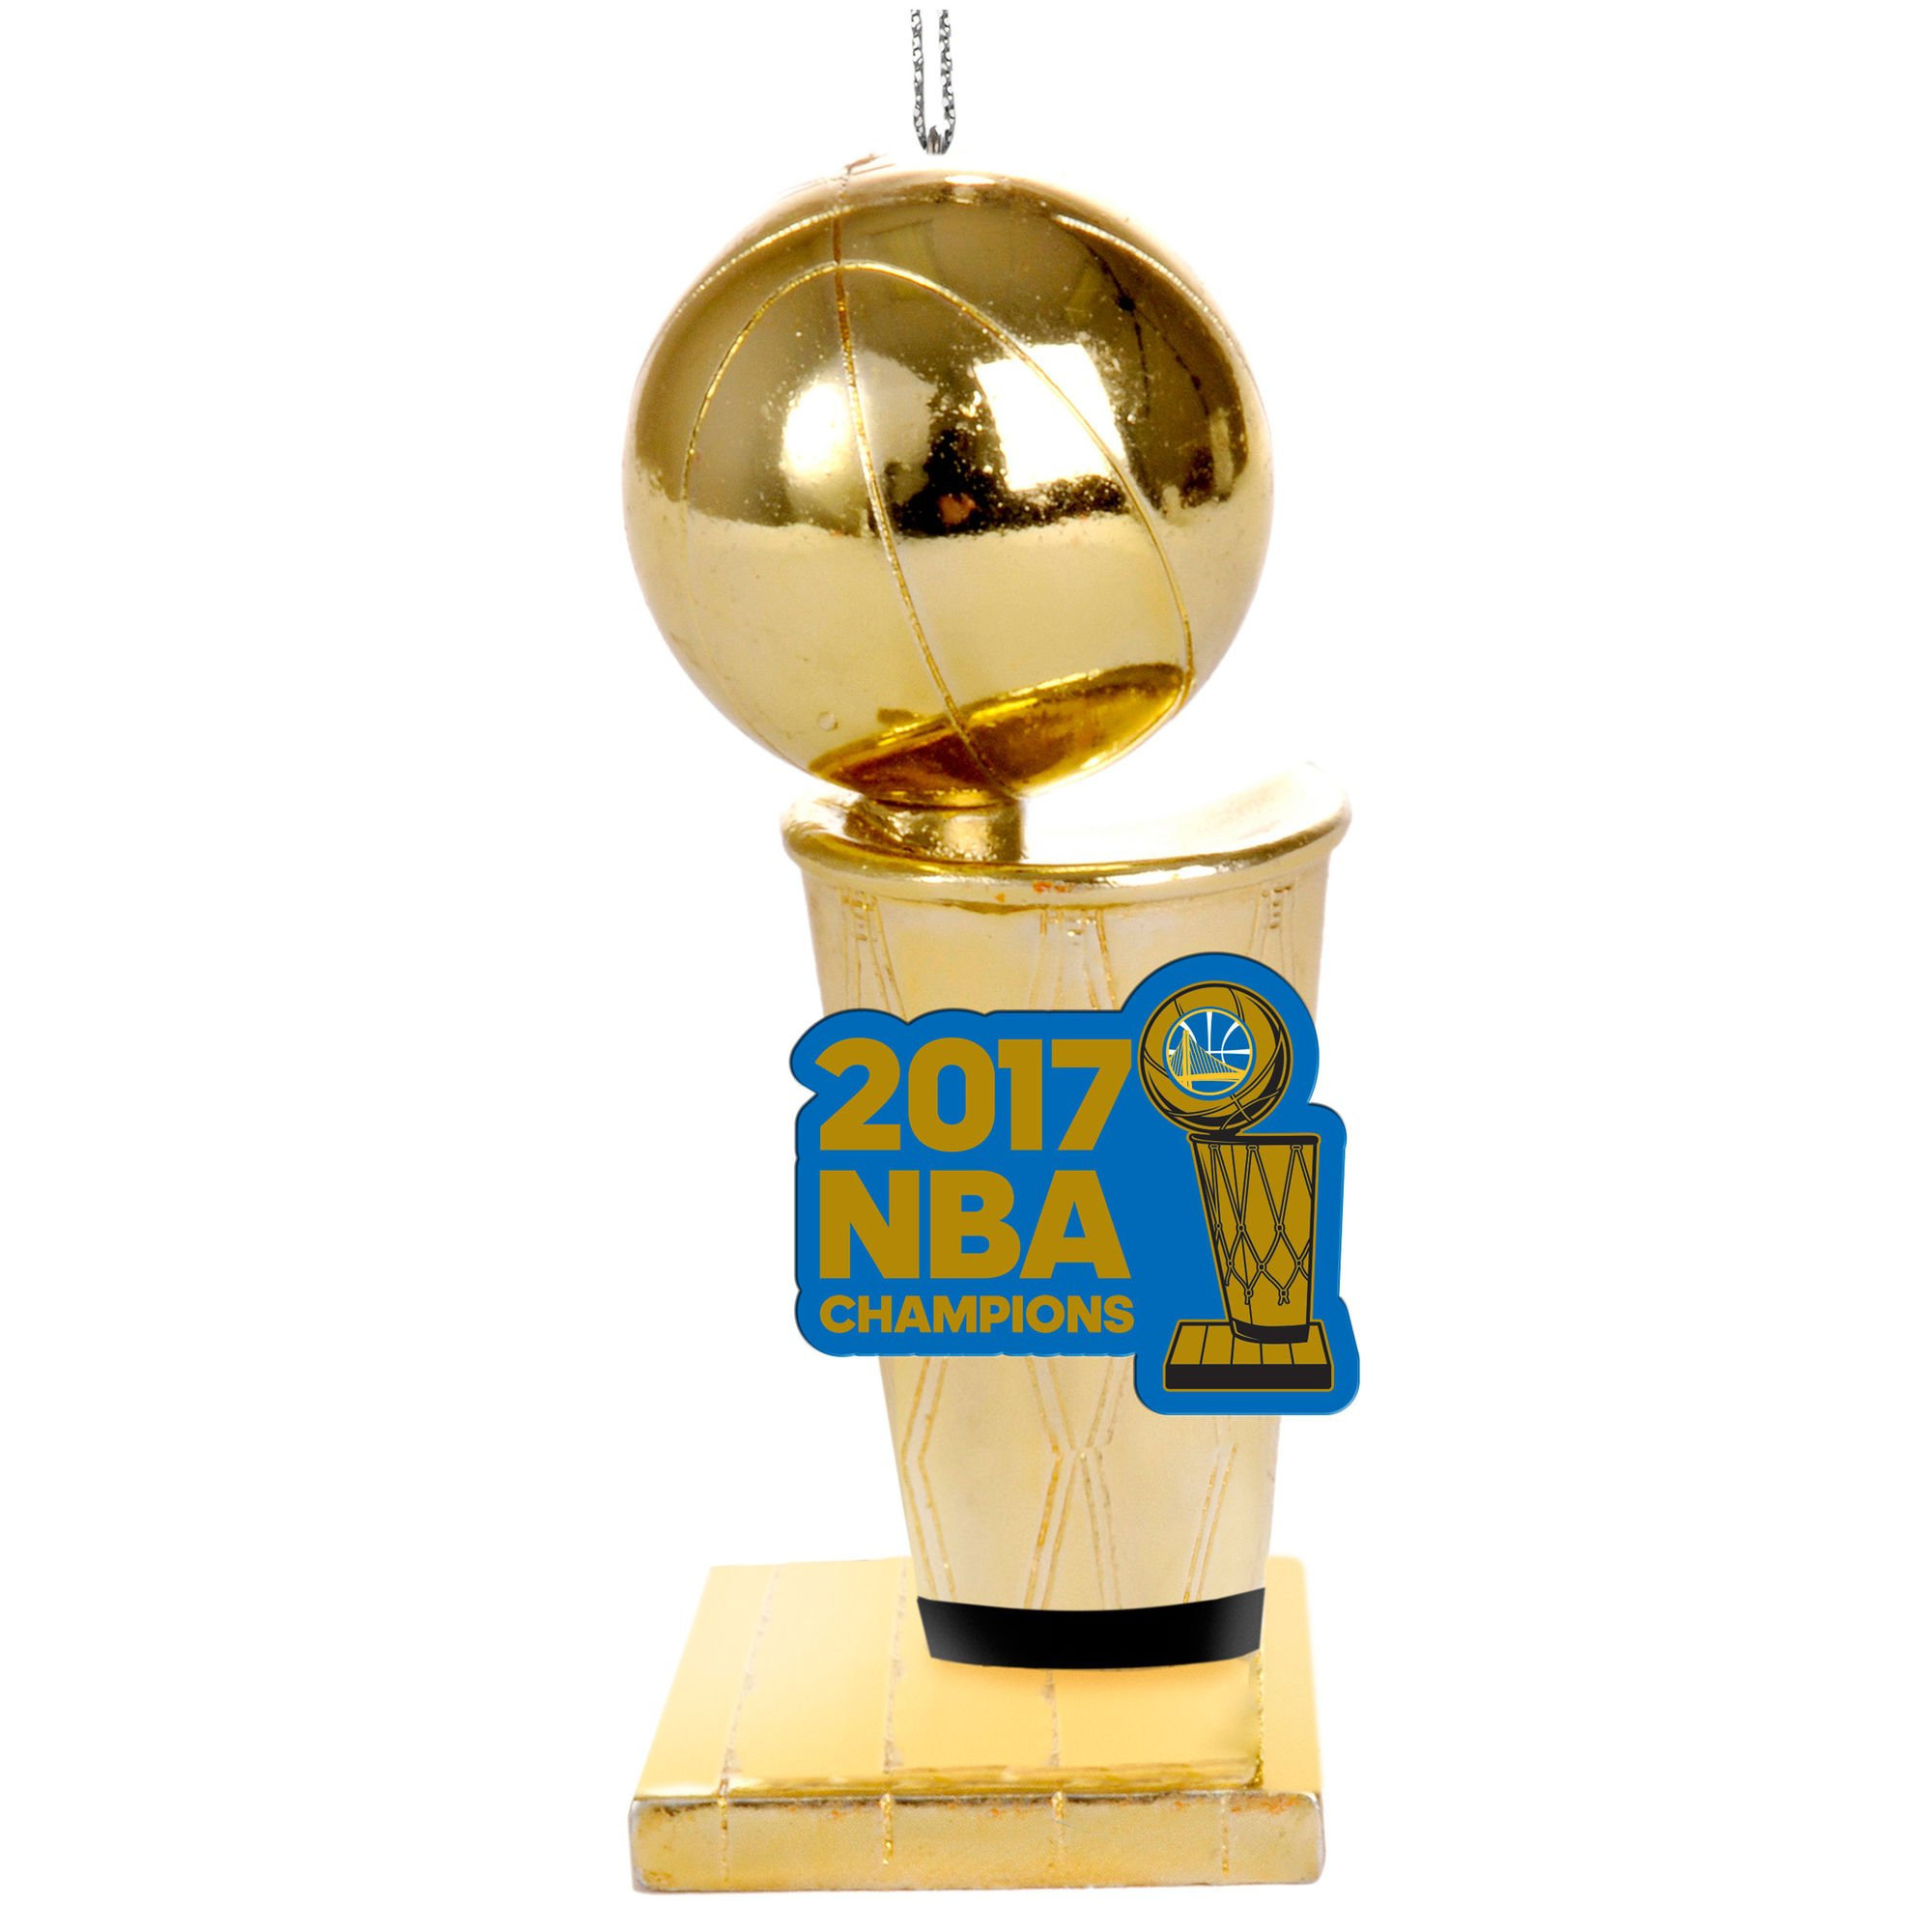 FOCO Golden State Warriors 2017 NBA Champions Trophy Ornament